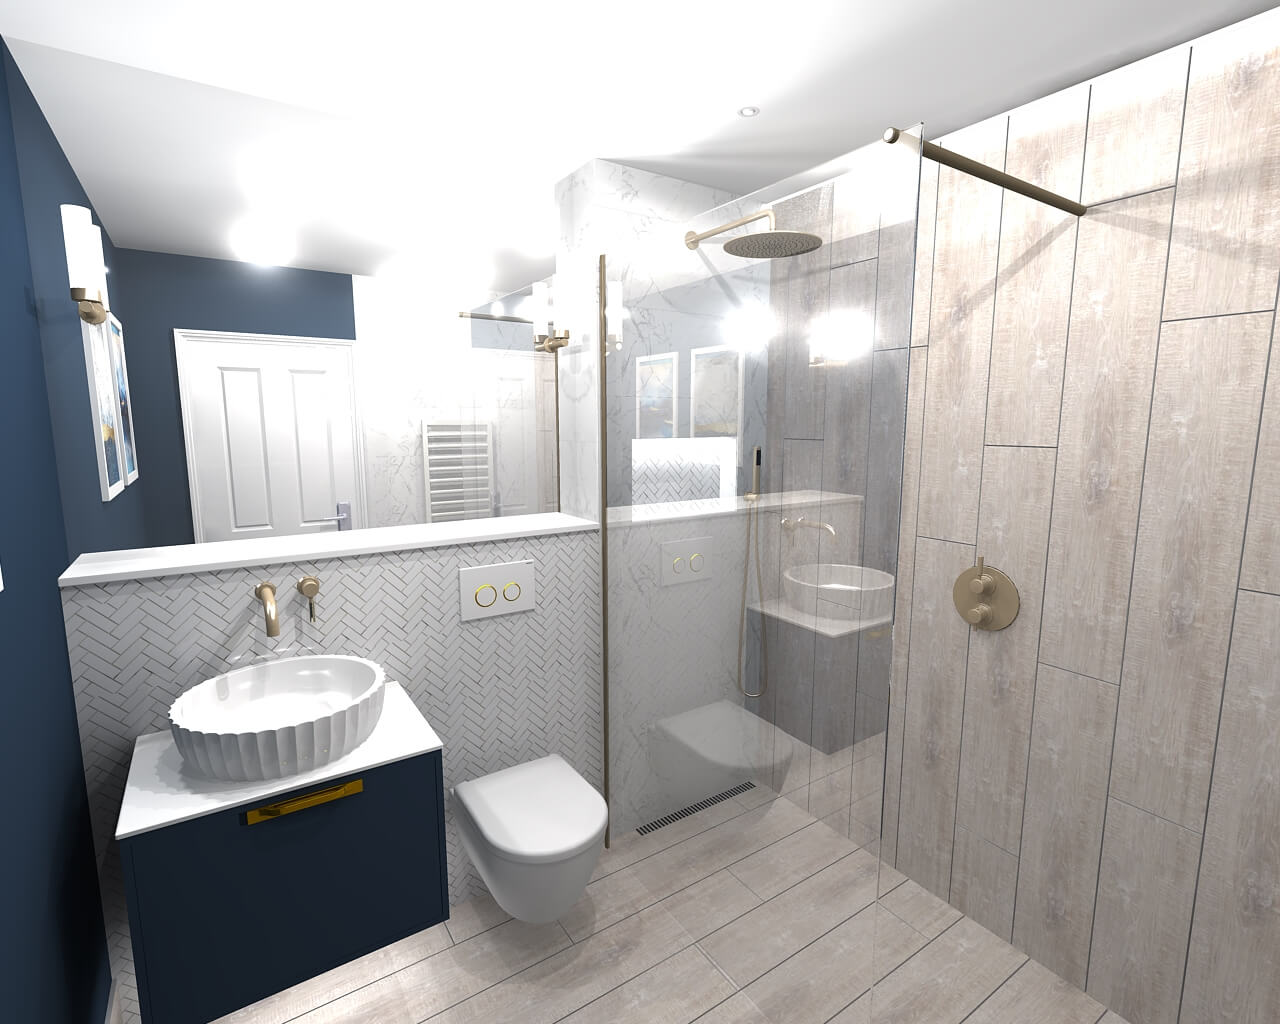 Wet room installers surrey | Bathroom Eleven